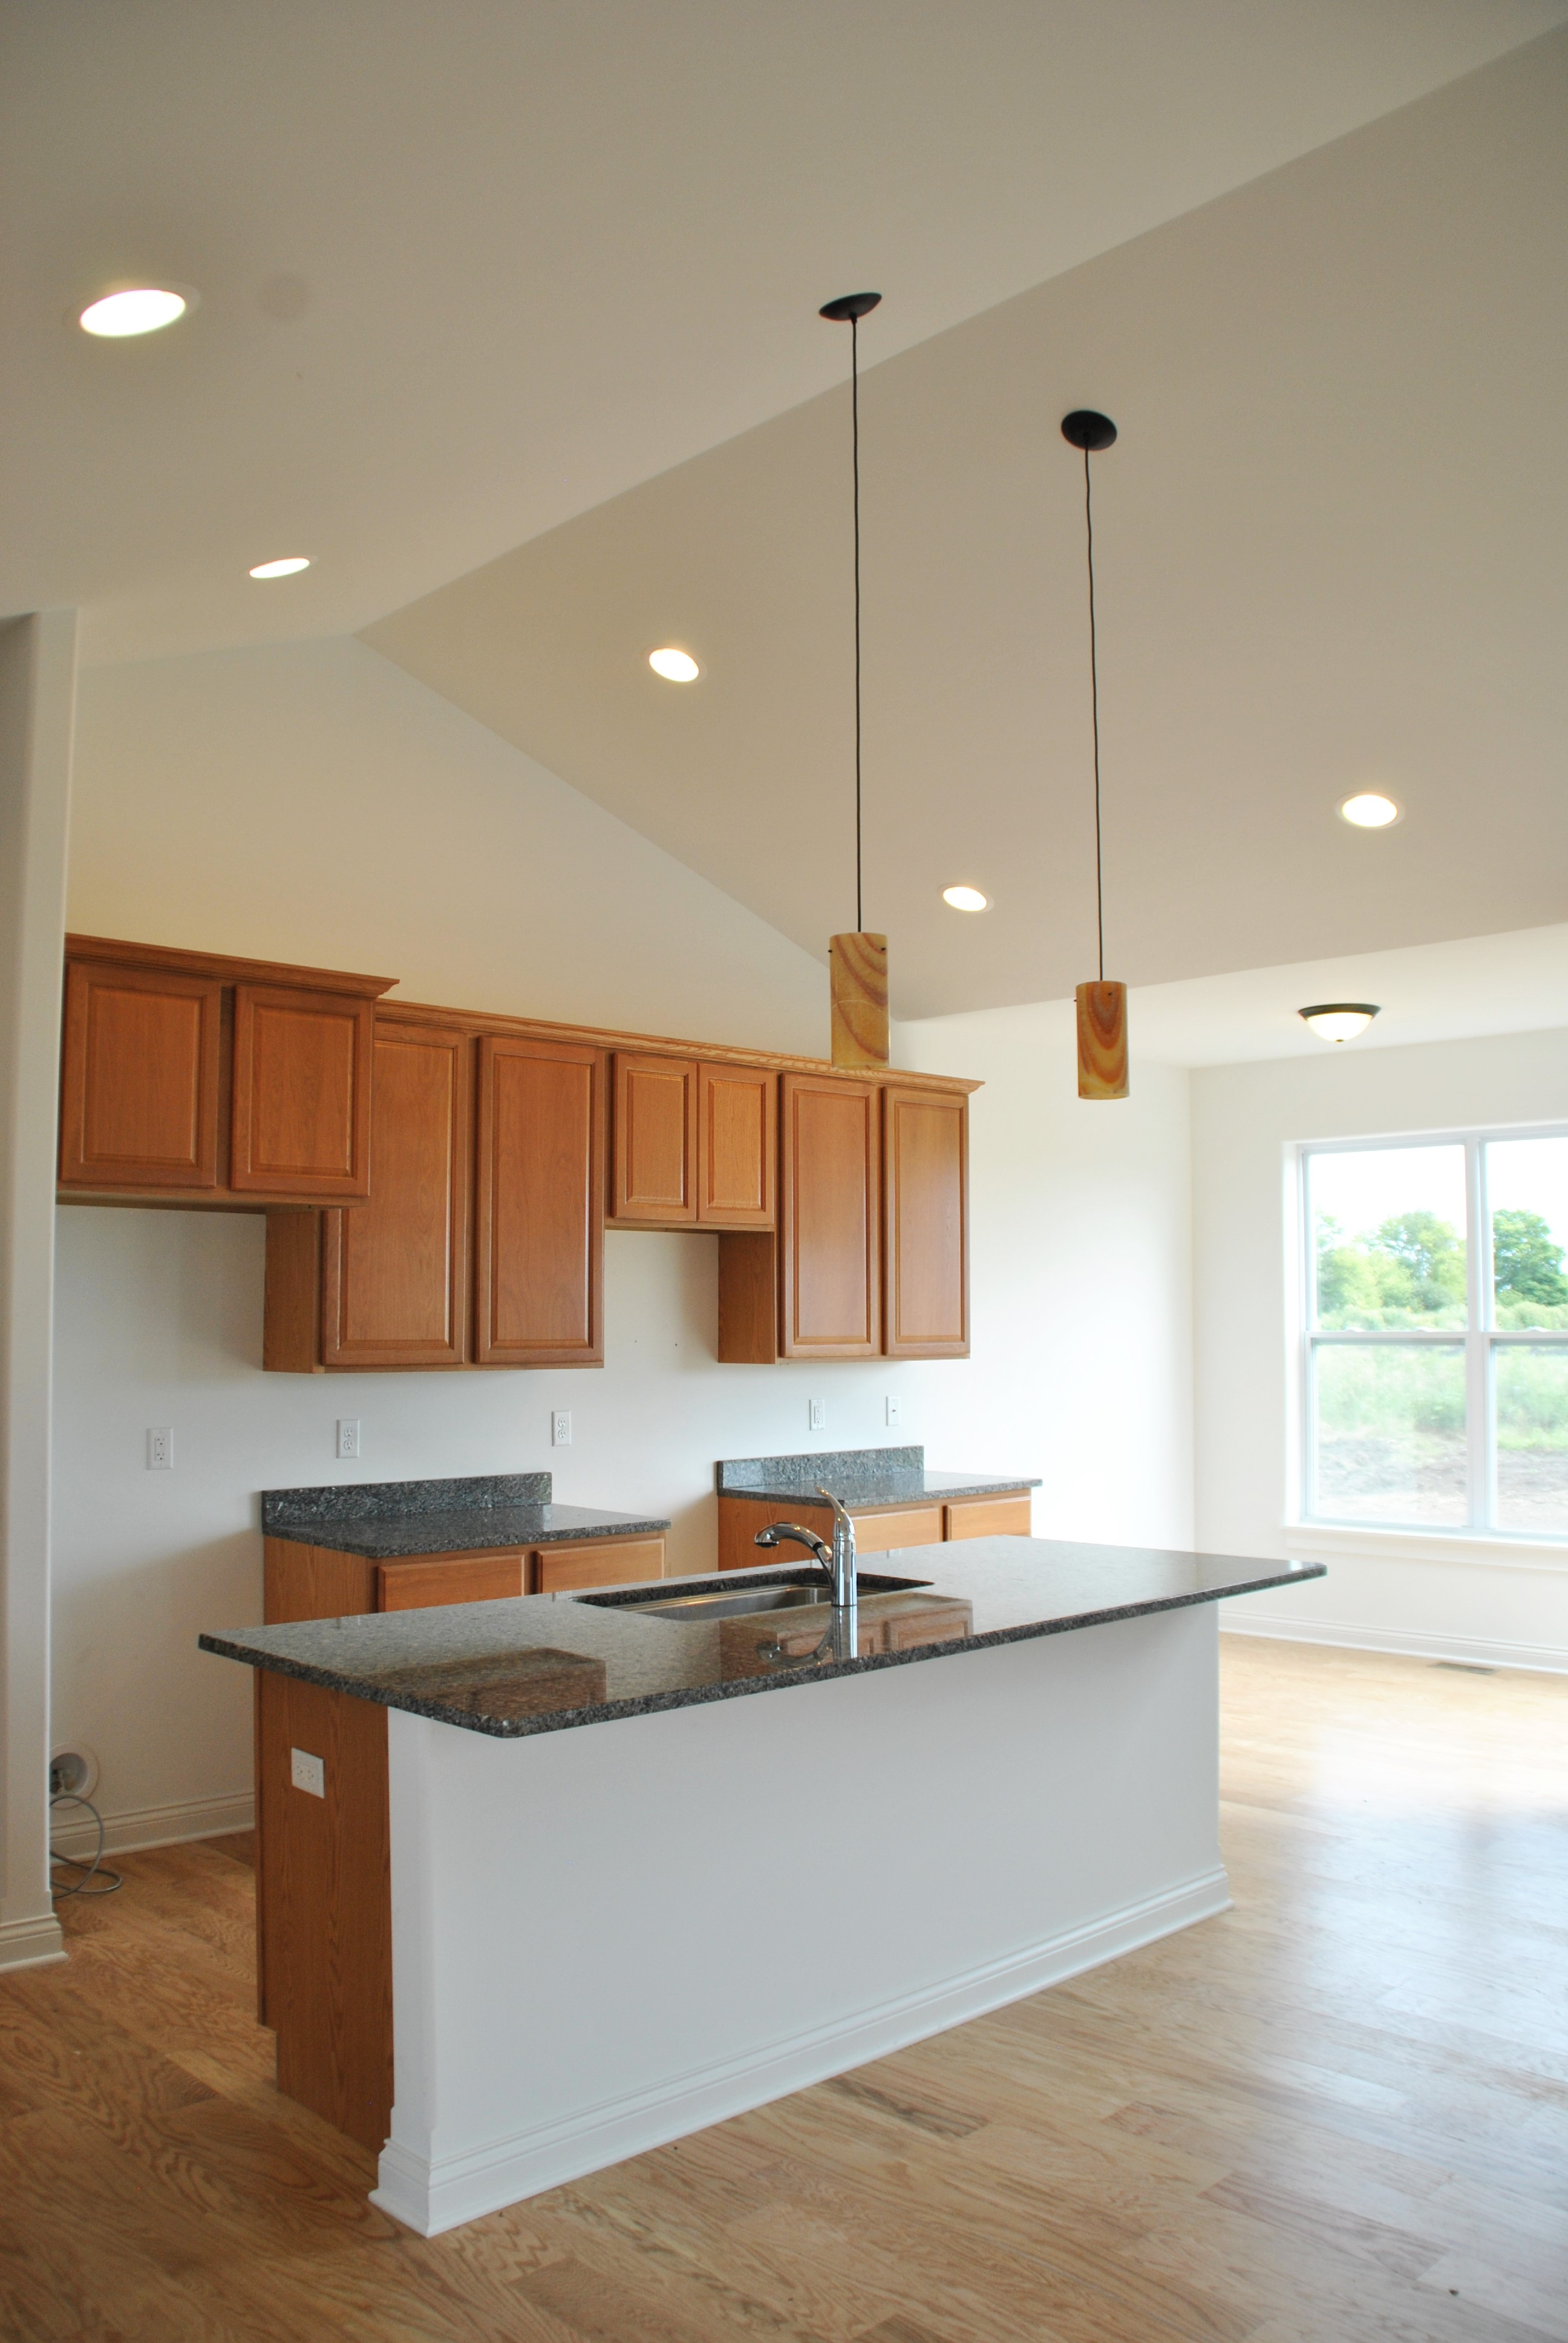 kitchen with light colored floor and oak cabinets